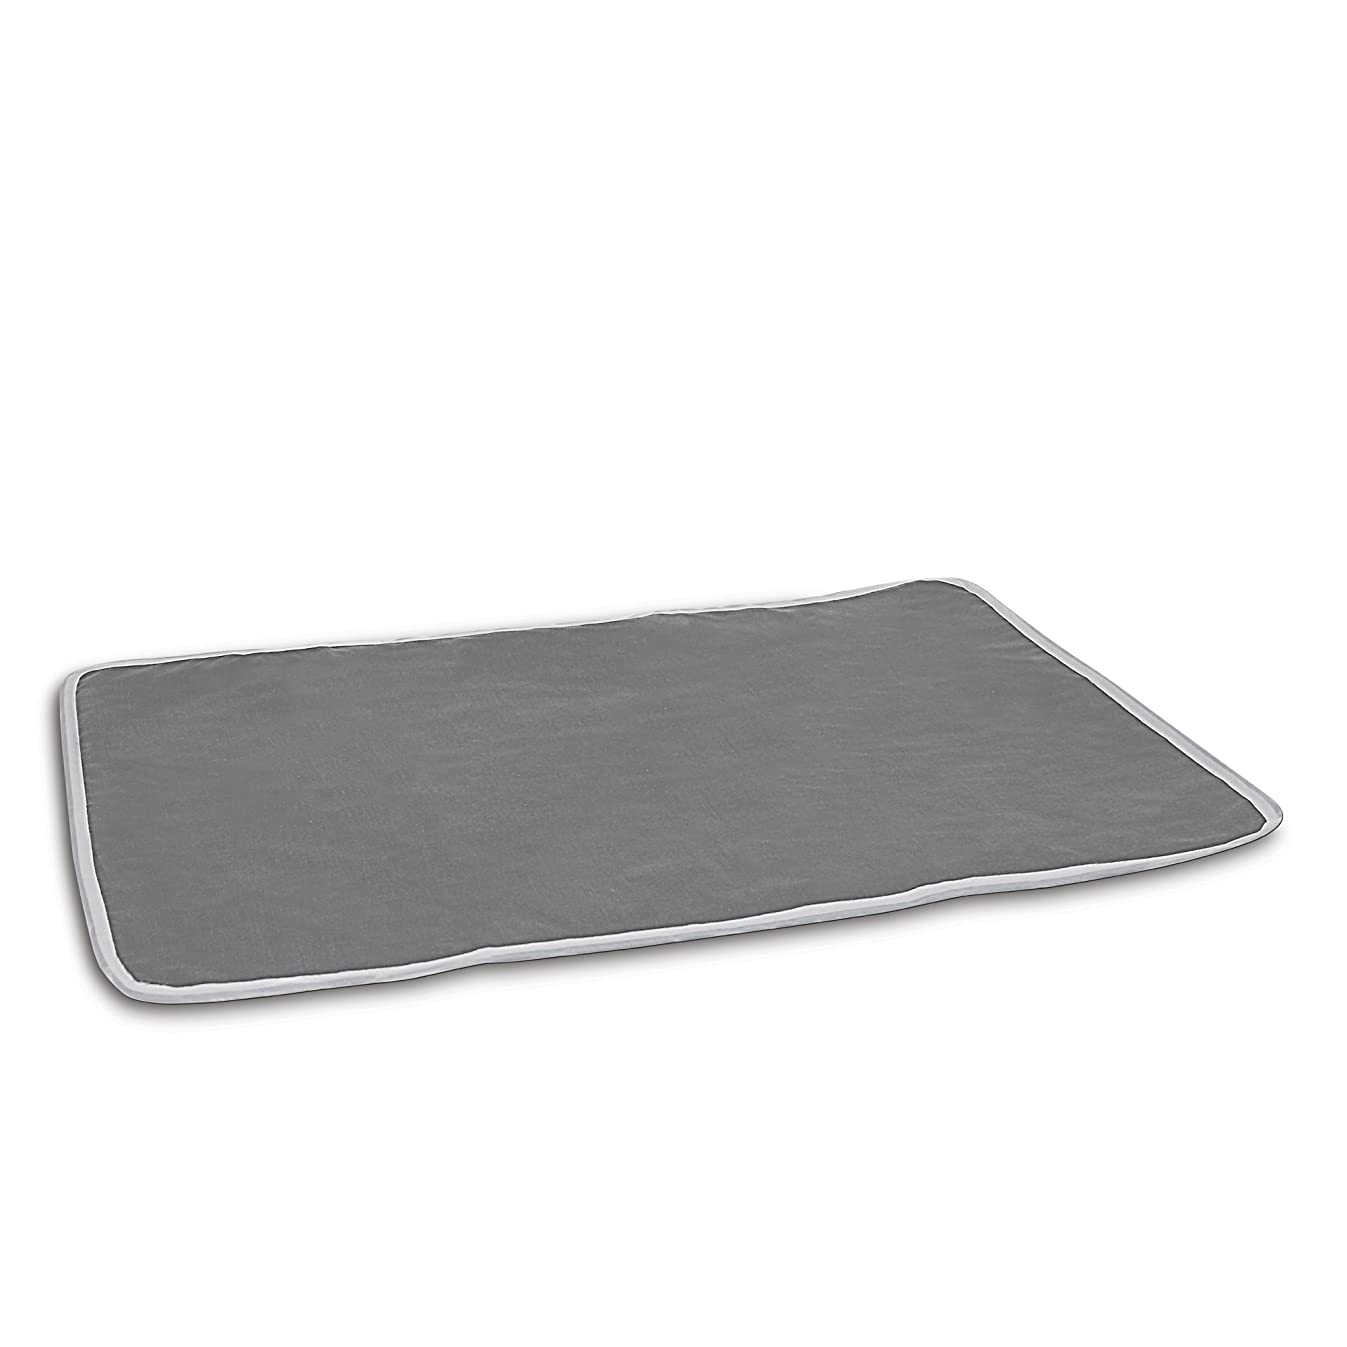 Homz Cotton Ironing Mat, Portable, Gray